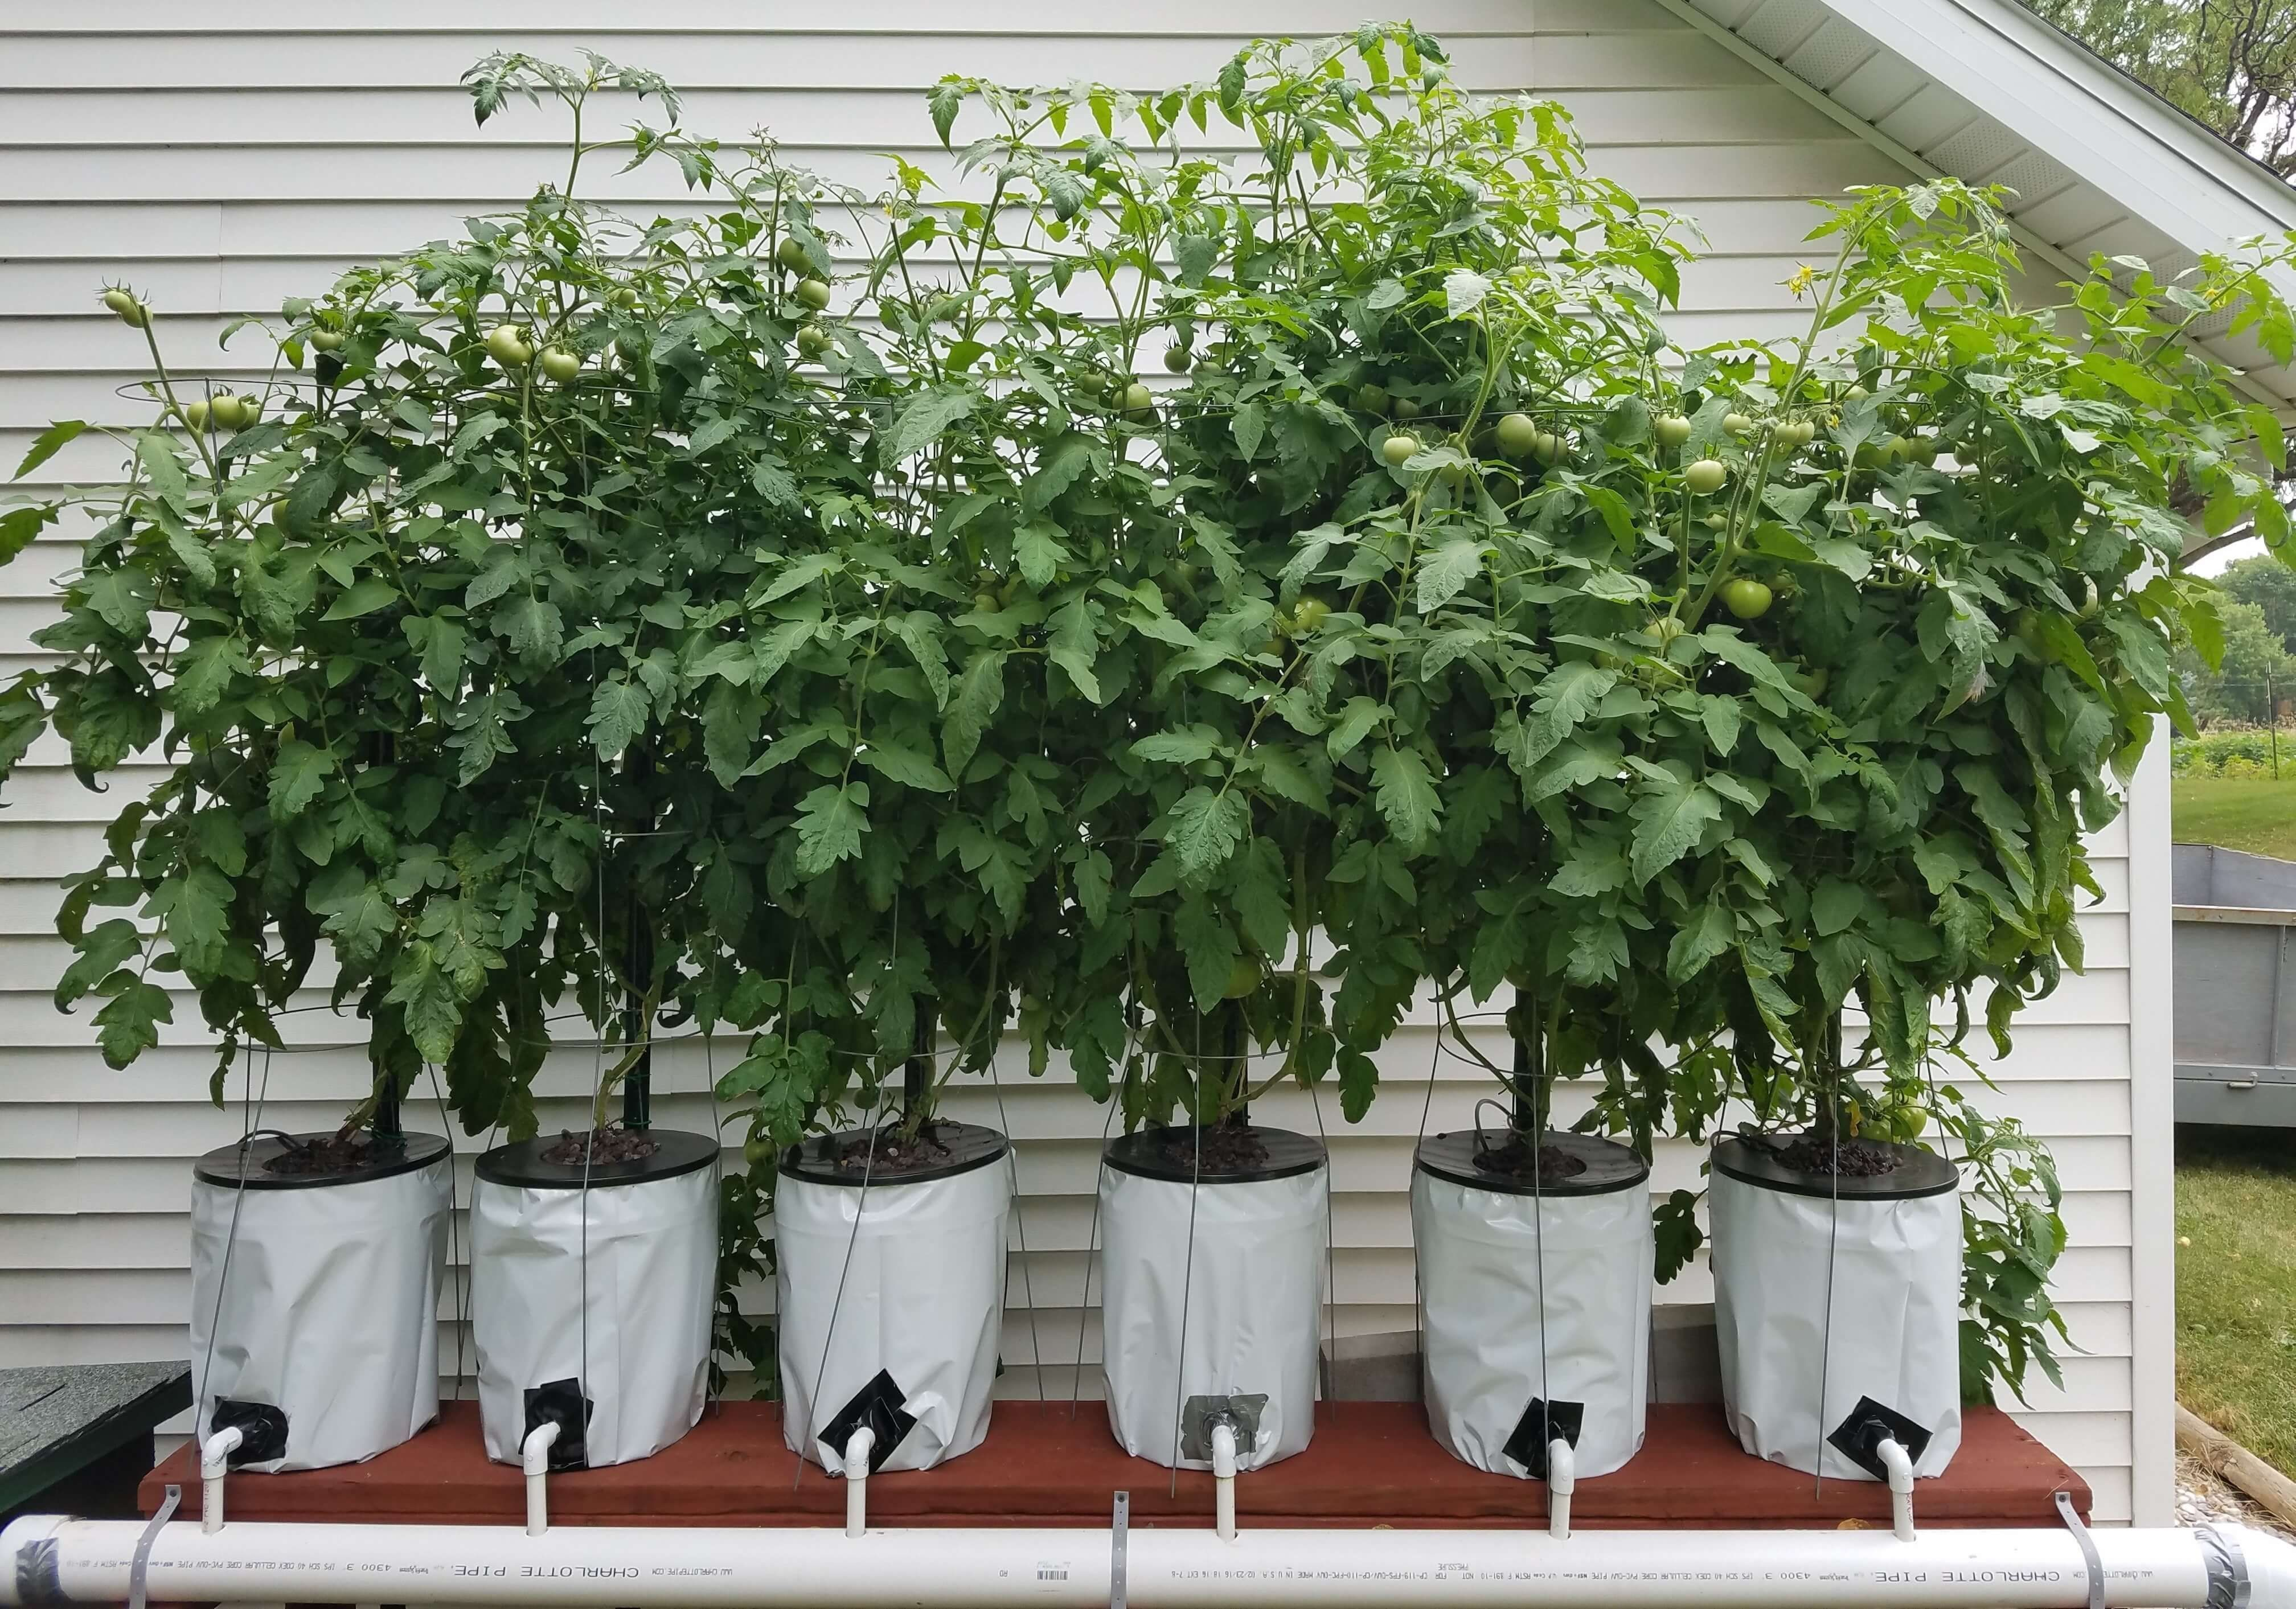 Hydroponic Gardening Supplies For The Beginner